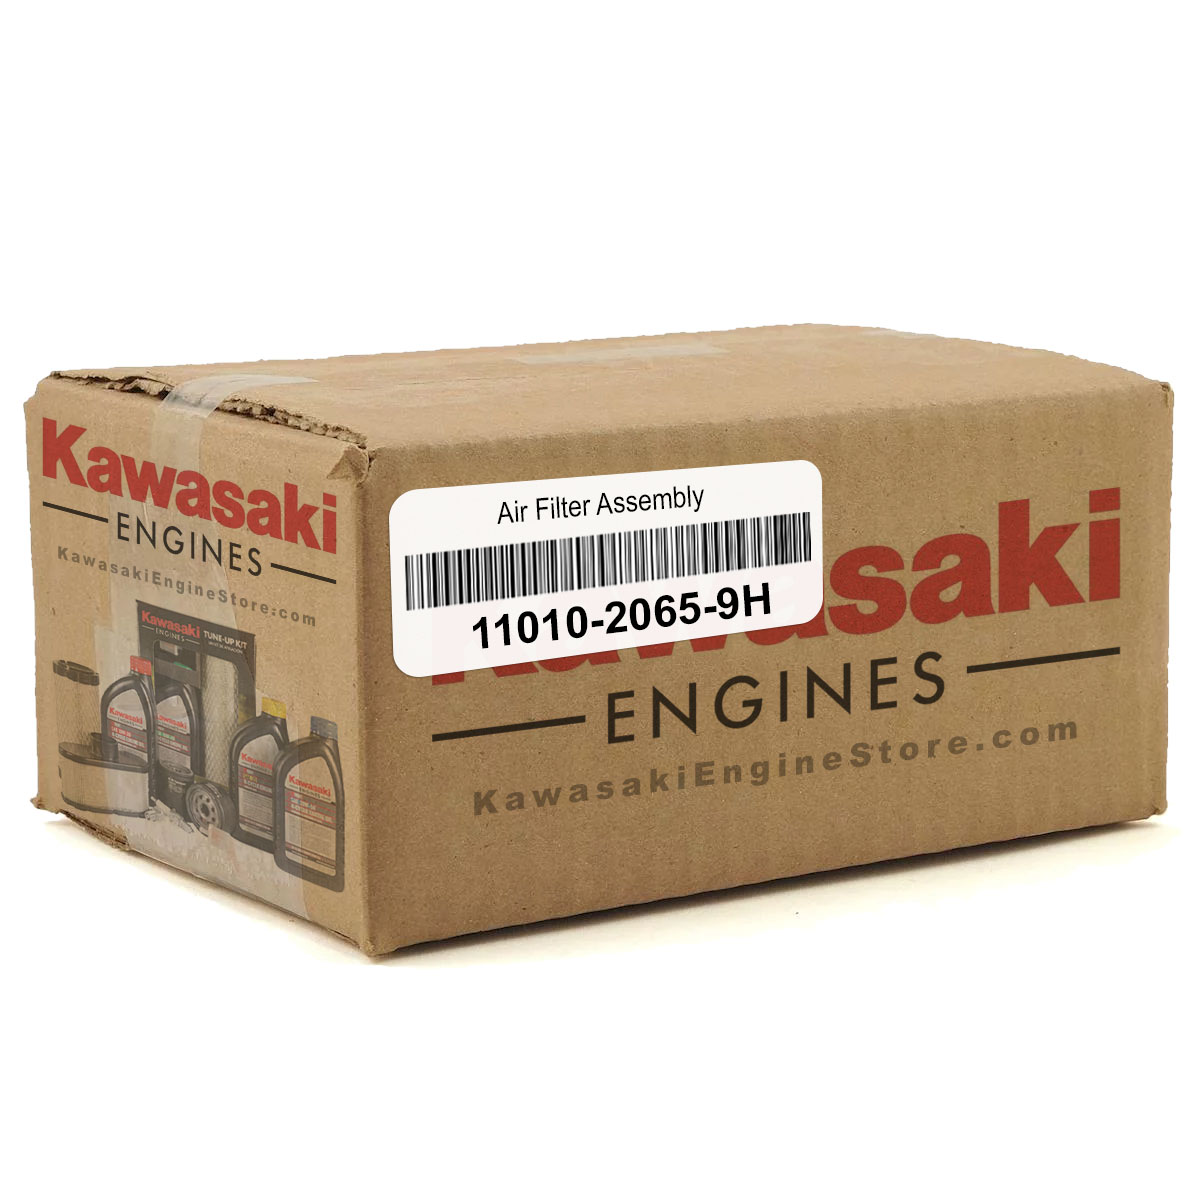 Kawasaki 11010-2065-9H Air Filter Assembly